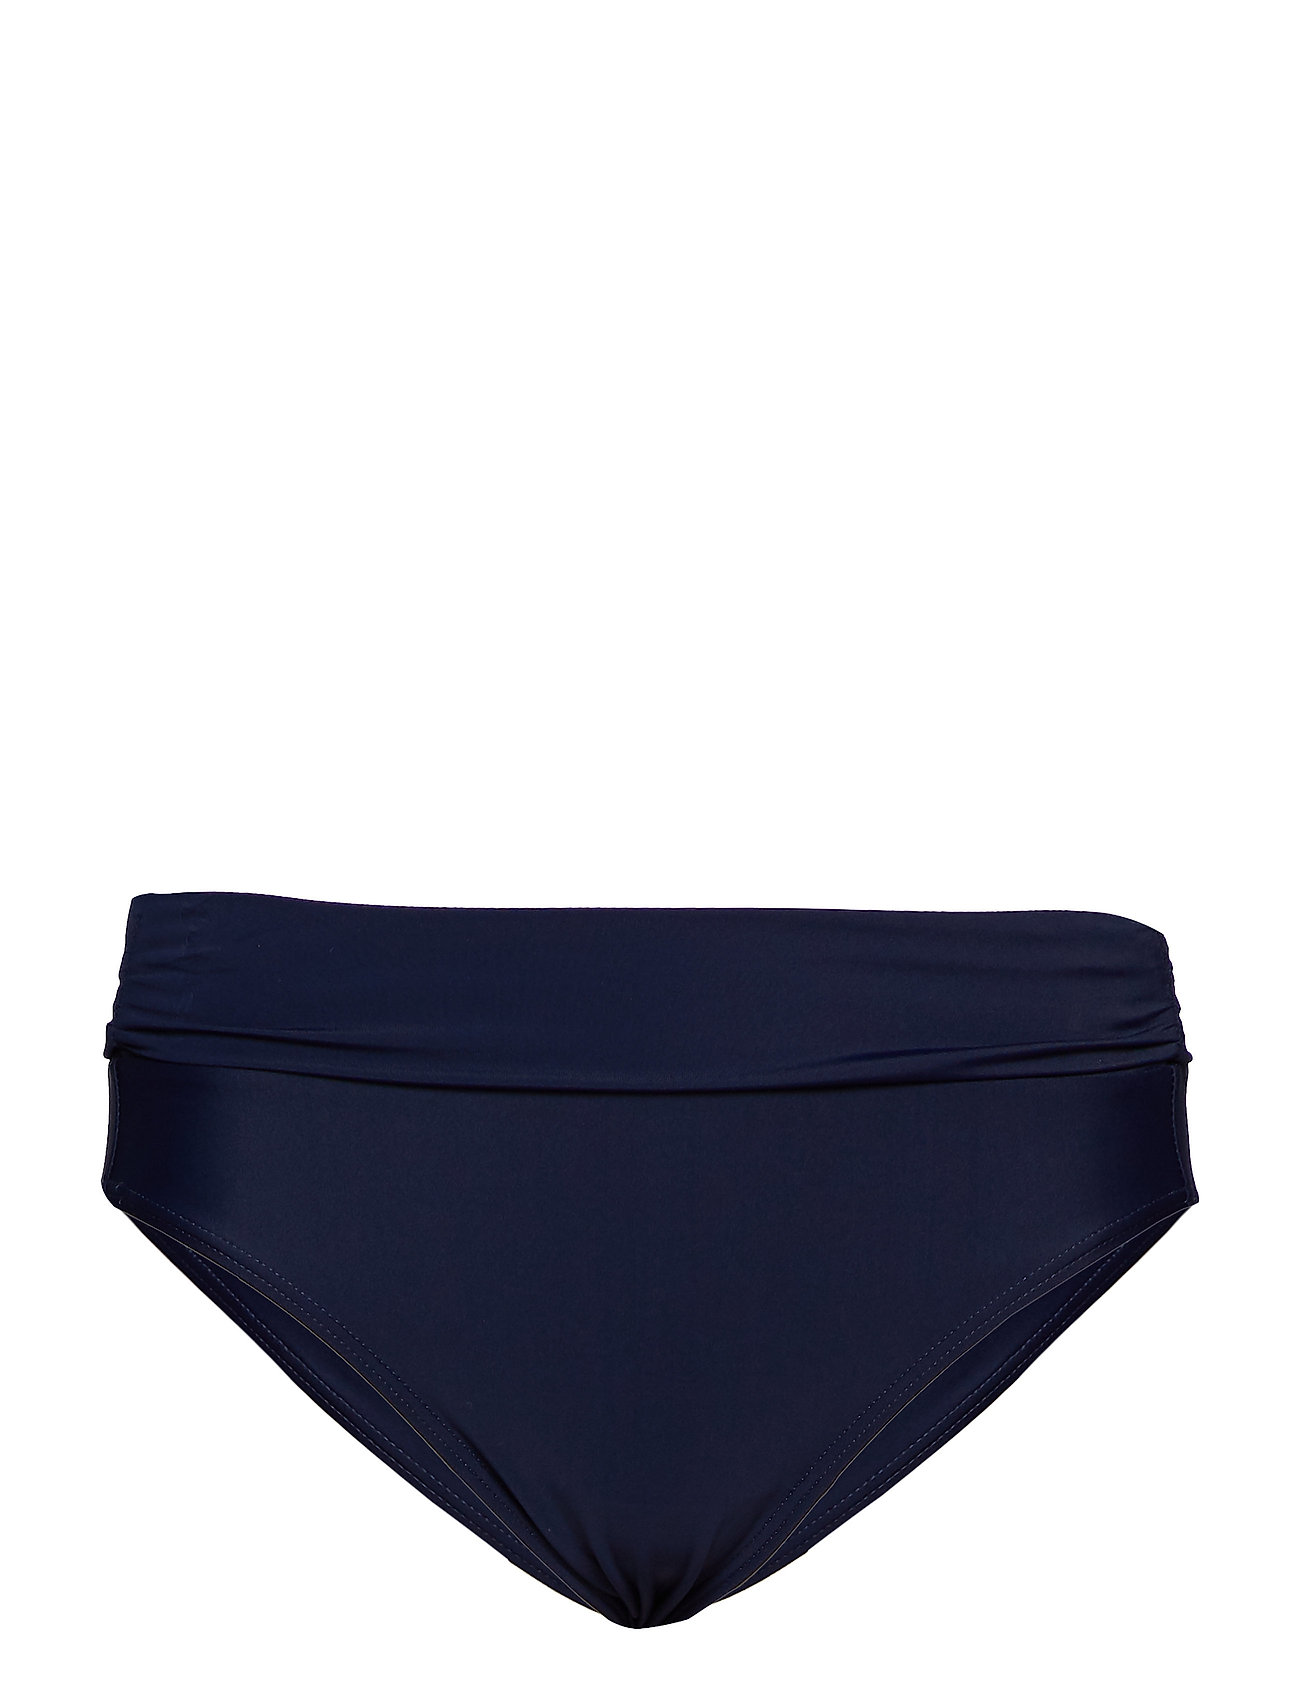 Wiki Swim Tai de luxe - MIDNIGHT